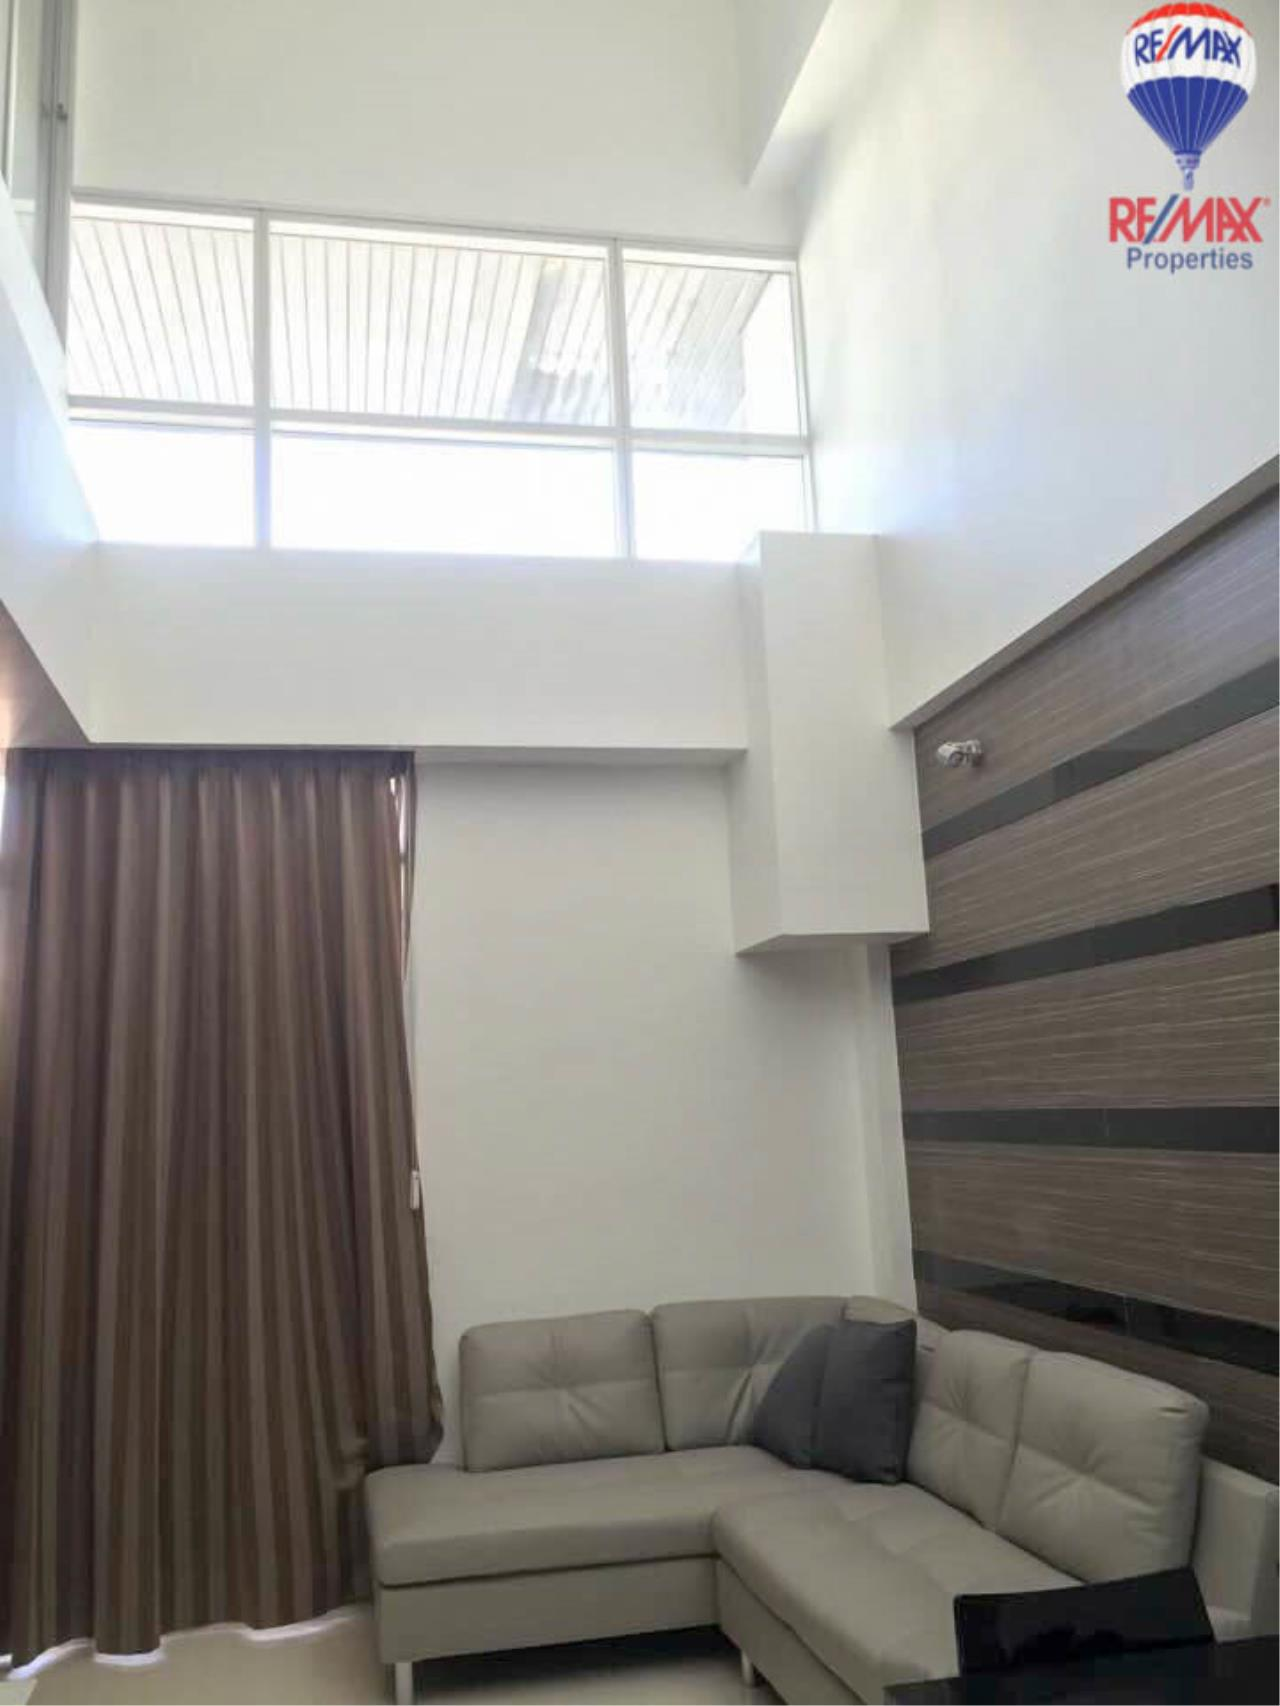 RE/MAX Properties Agency's 2 Bedrooms Duplex style for rent at The Trendy condo 2